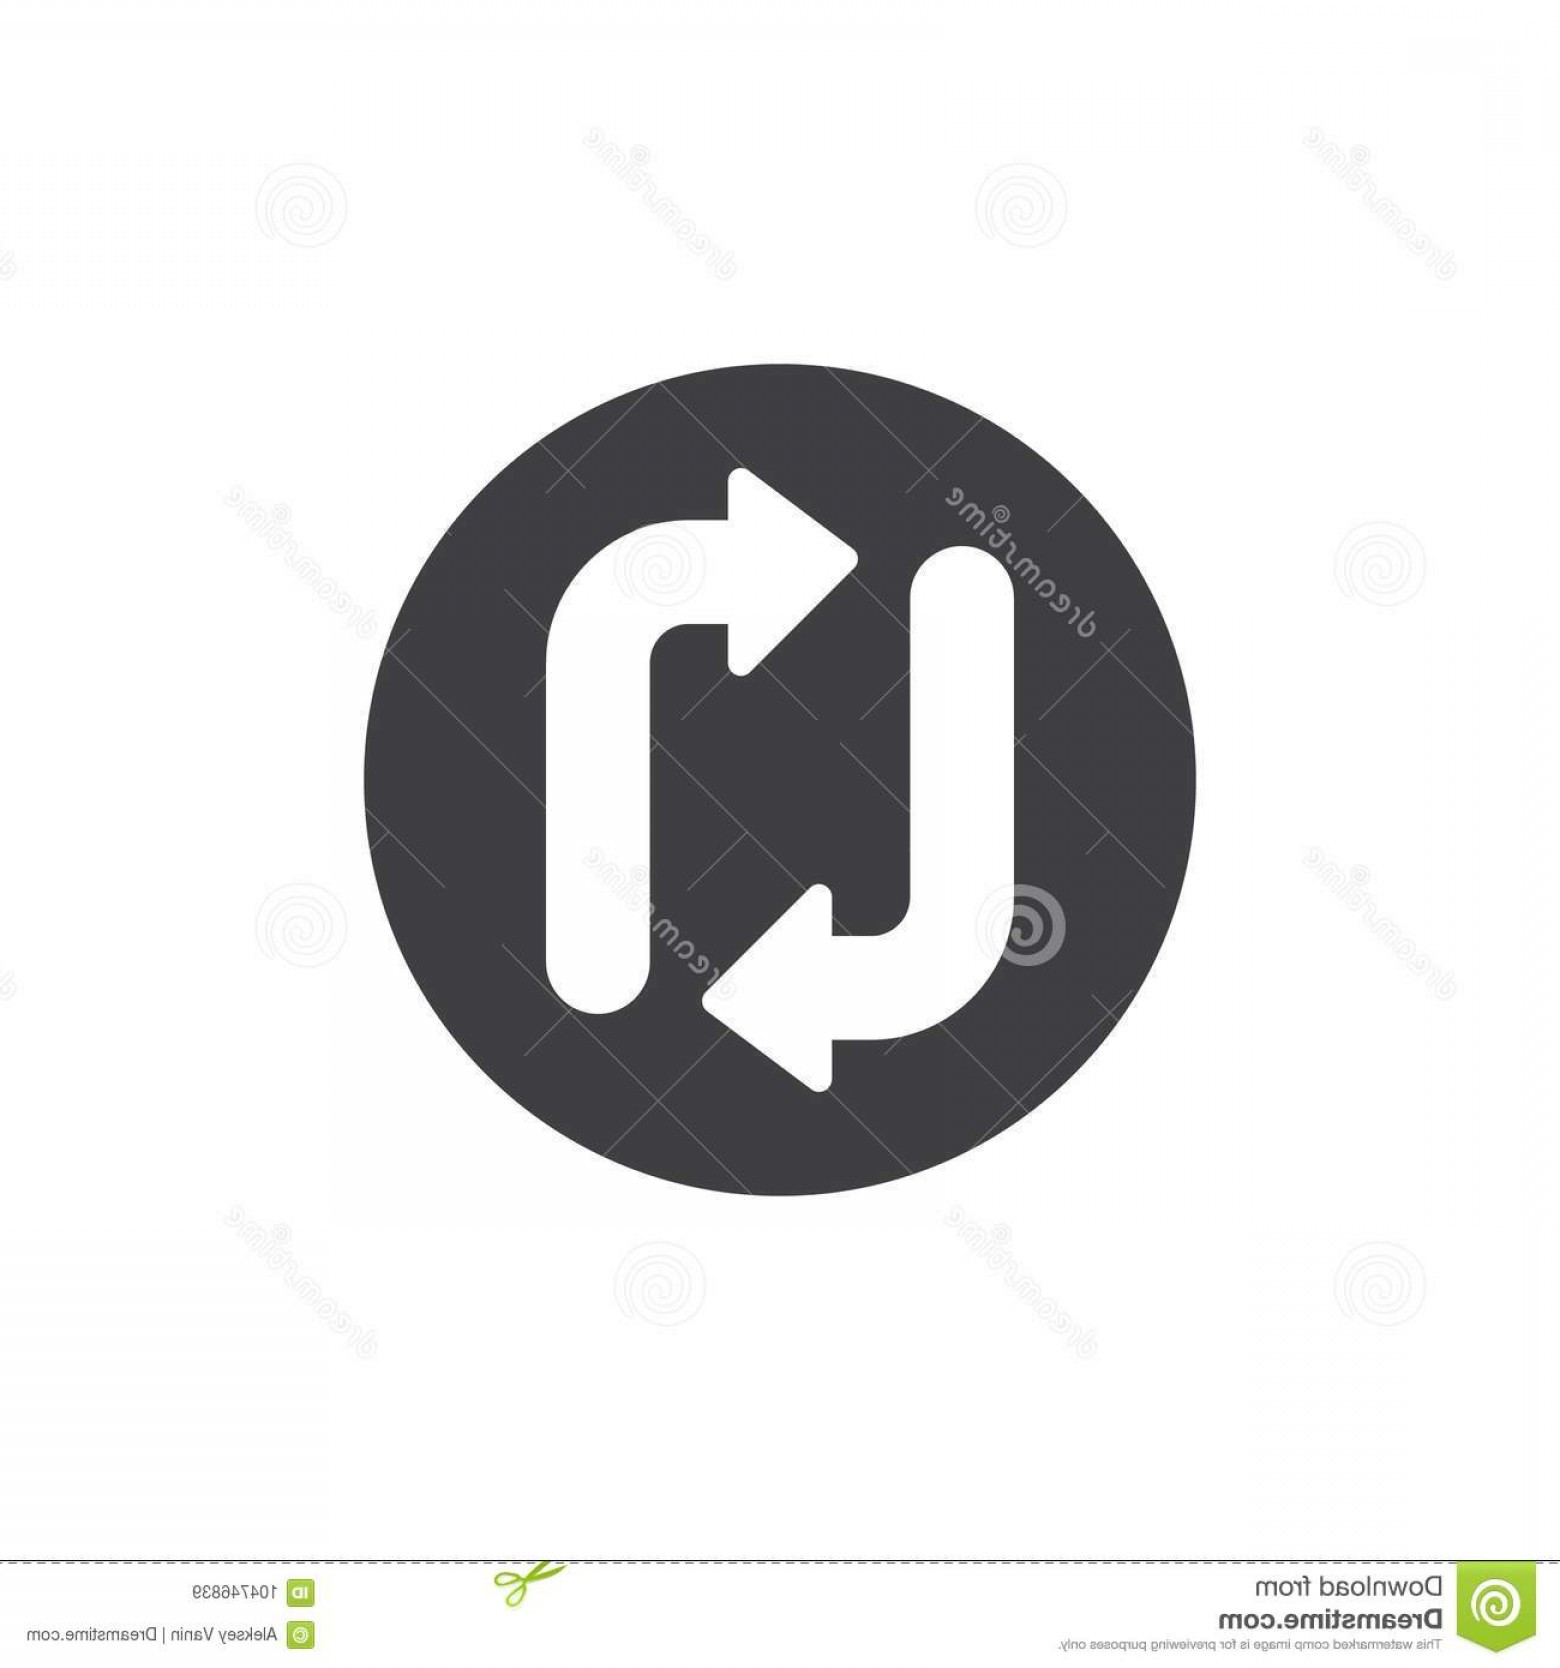 Refresh Icon Vector: Arrow Update Refresh Icon Vector Arrow Update Refresh Icon Vector Filled Flat Sign Solid Pictogram Isolated White Transfer Image